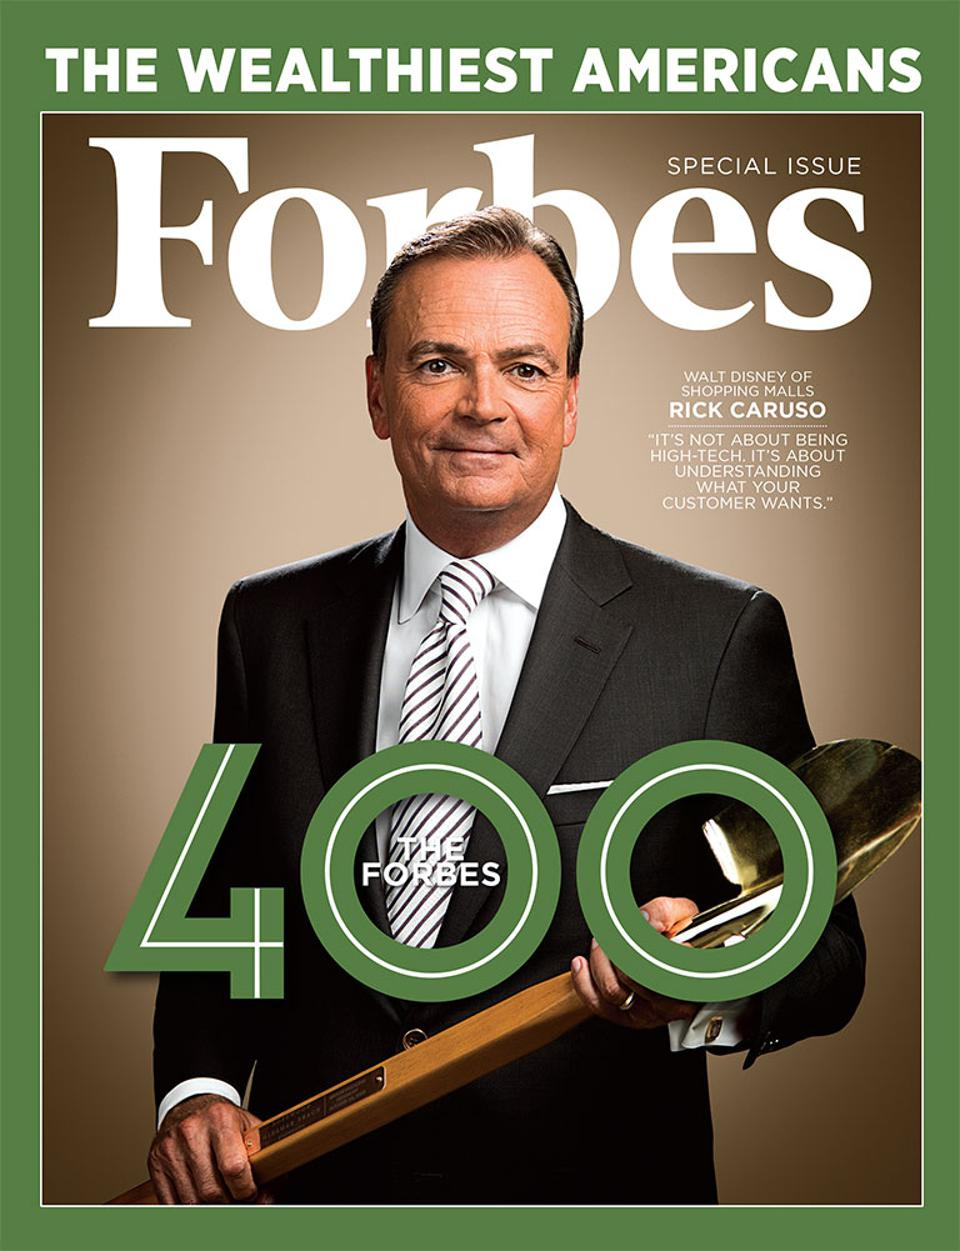 The October 31, 2018 issue of Forbes featuring Rick Caruso.